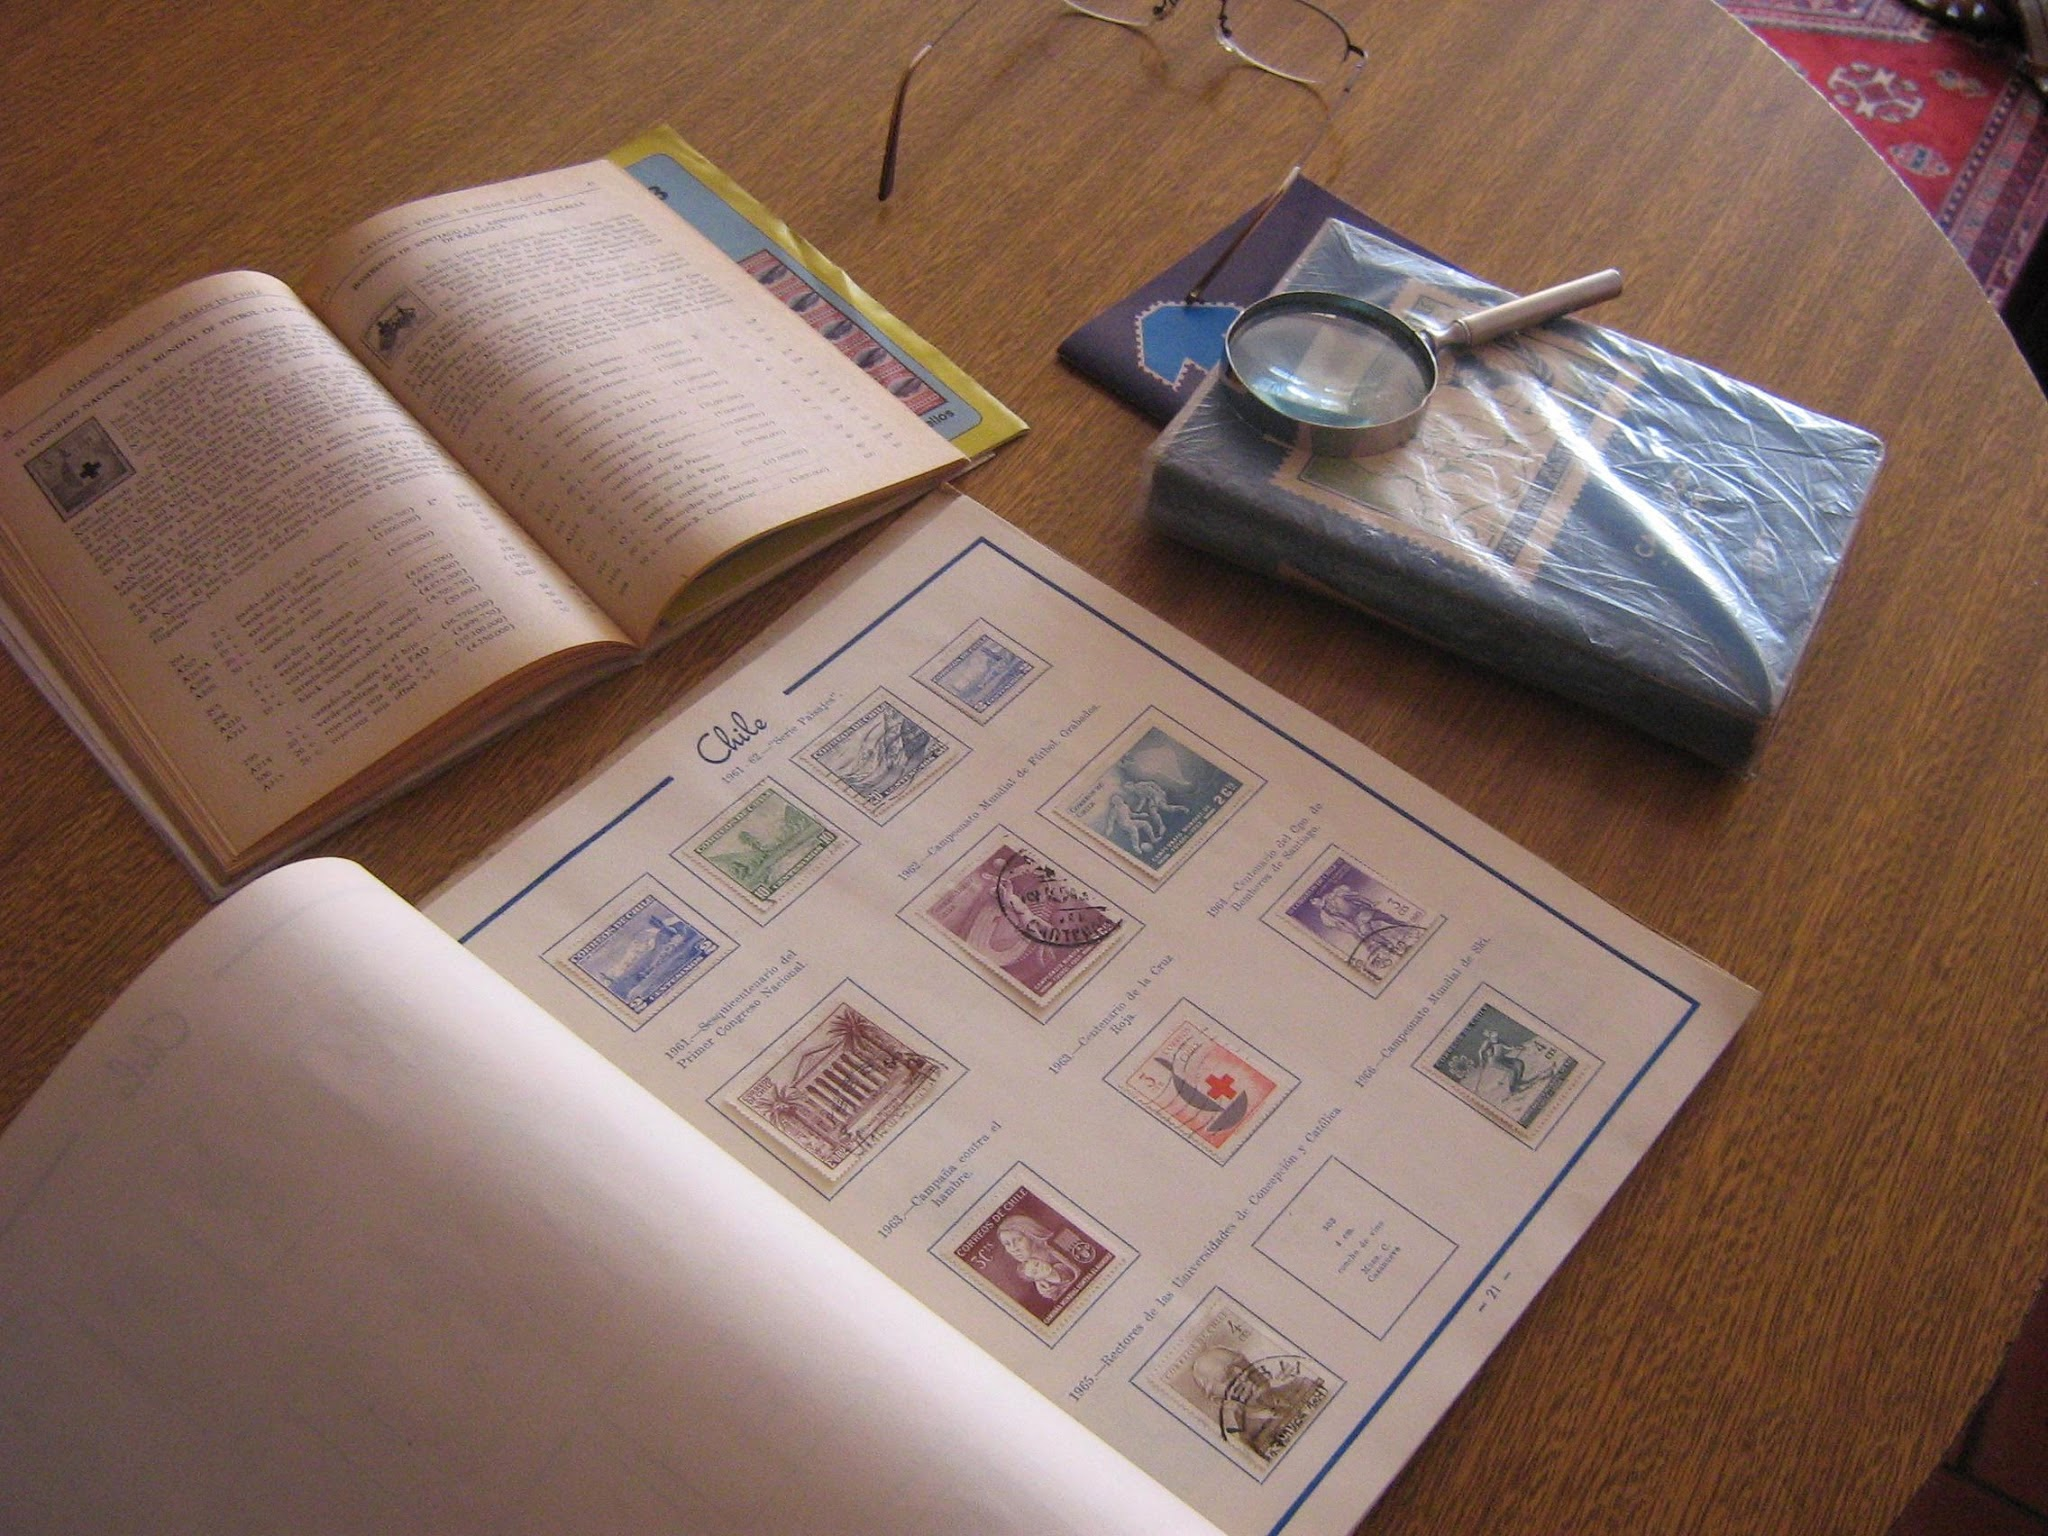 Stamp Collecting Books and Magnifying glass - Enjoy Stamp Collecting? Join the City of Kawartha Lakes Branch free image linked to source